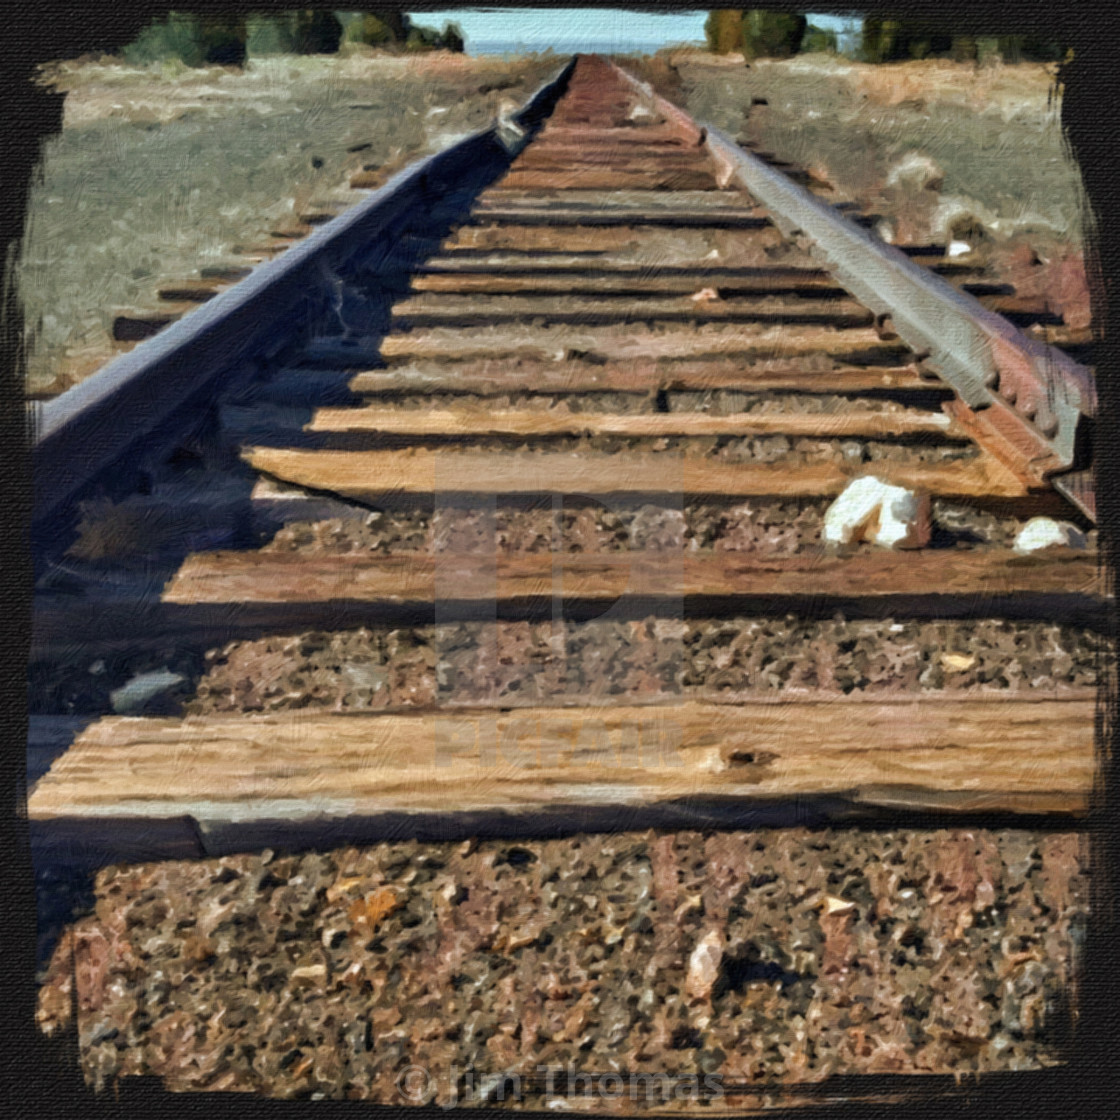 Abandoned Train Tracks - License, download or print for